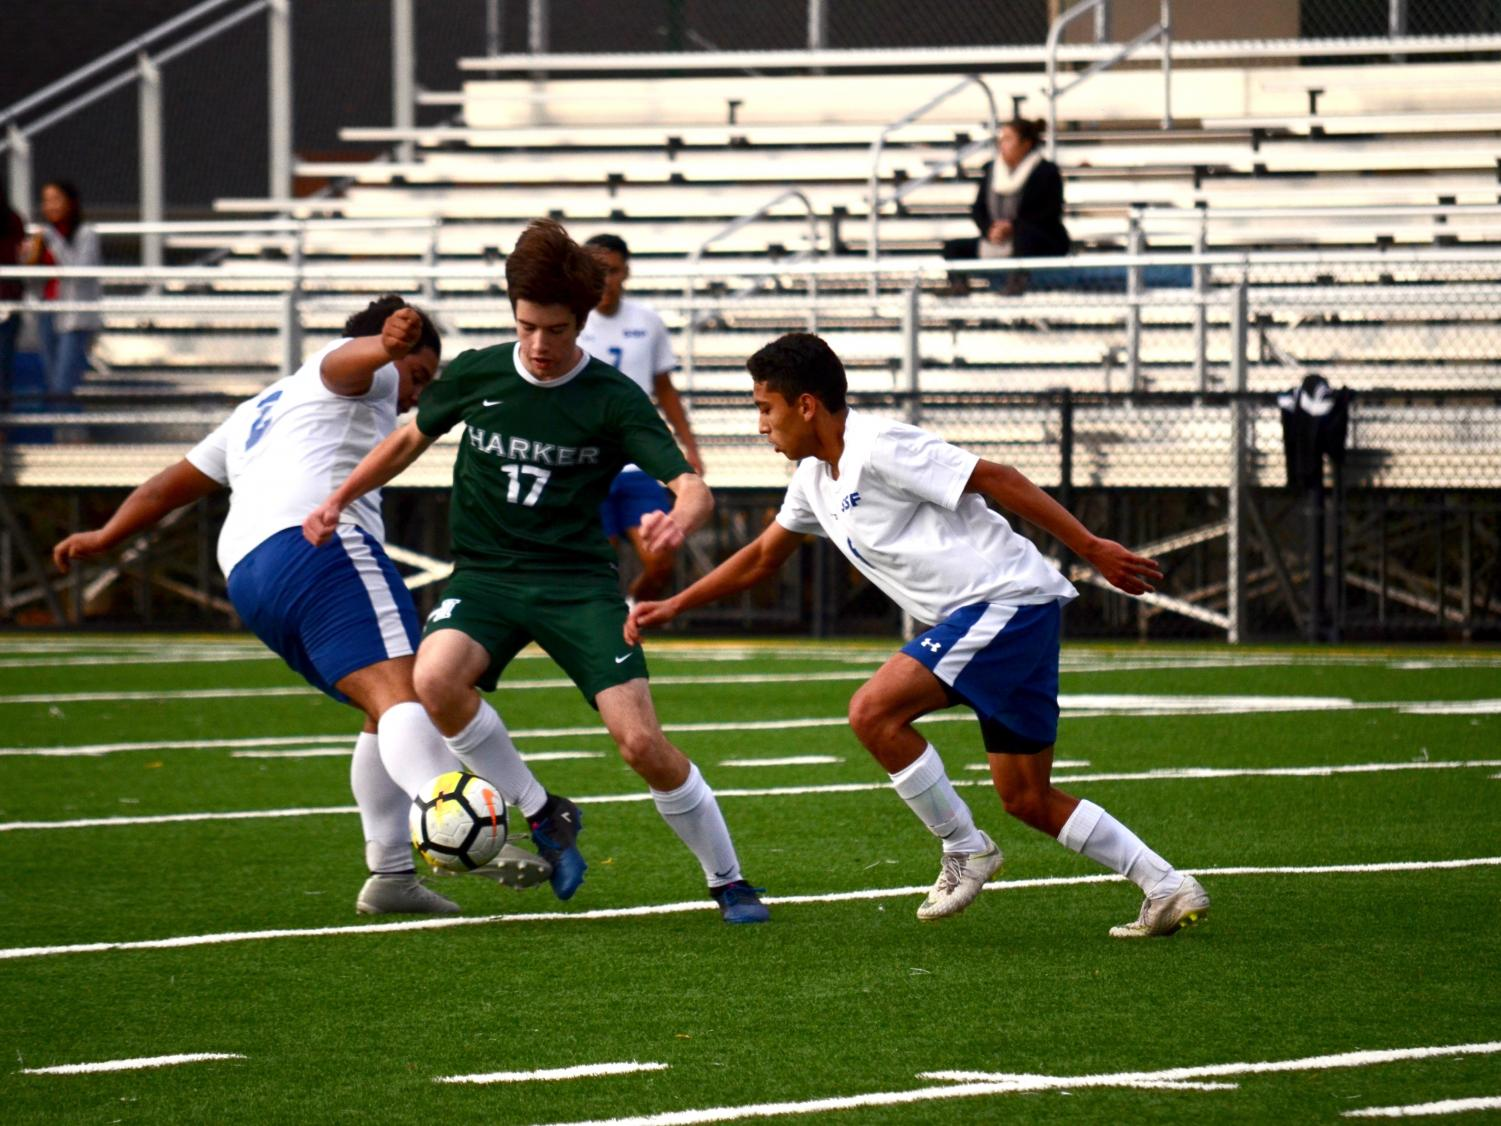 Ryan Tobin (10) weaves through a pair of South San Francisco varsity players.